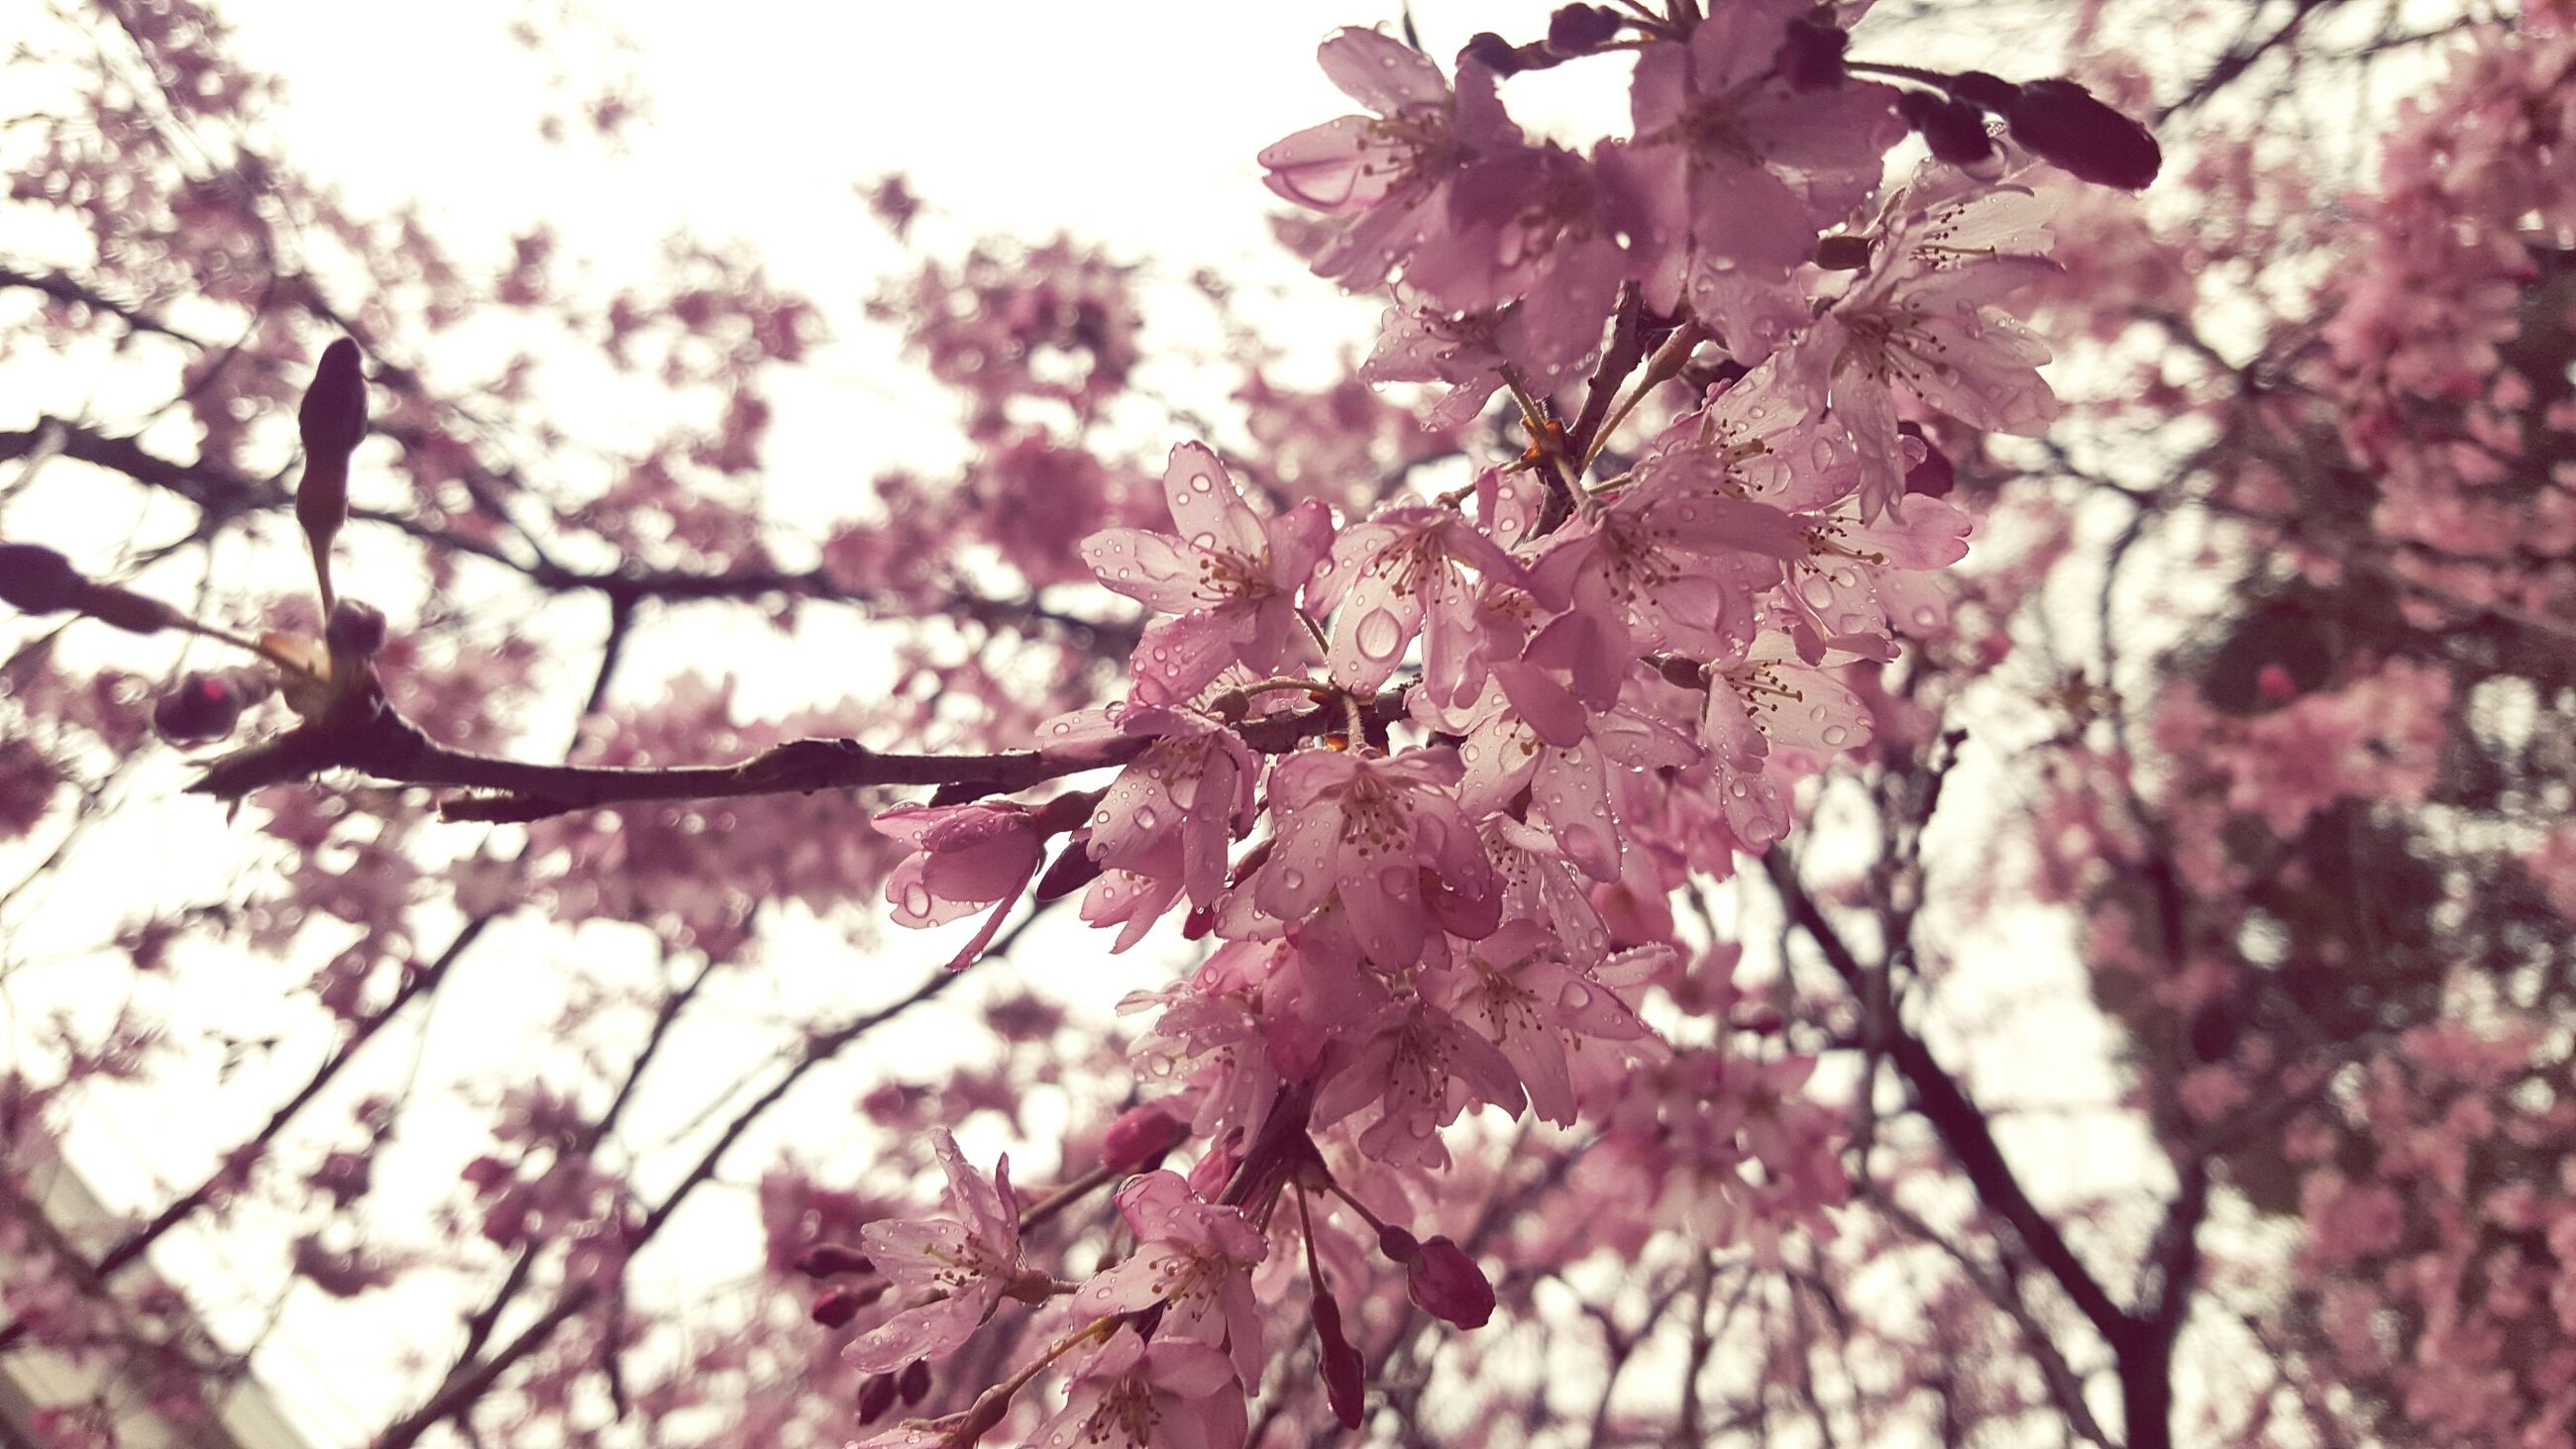 tree, growth, nature, beauty in nature, flower, branch, freshness, fragility, springtime, low angle view, twig, no people, outdoors, close-up, blossom, day, flower head, sky, plum blossom